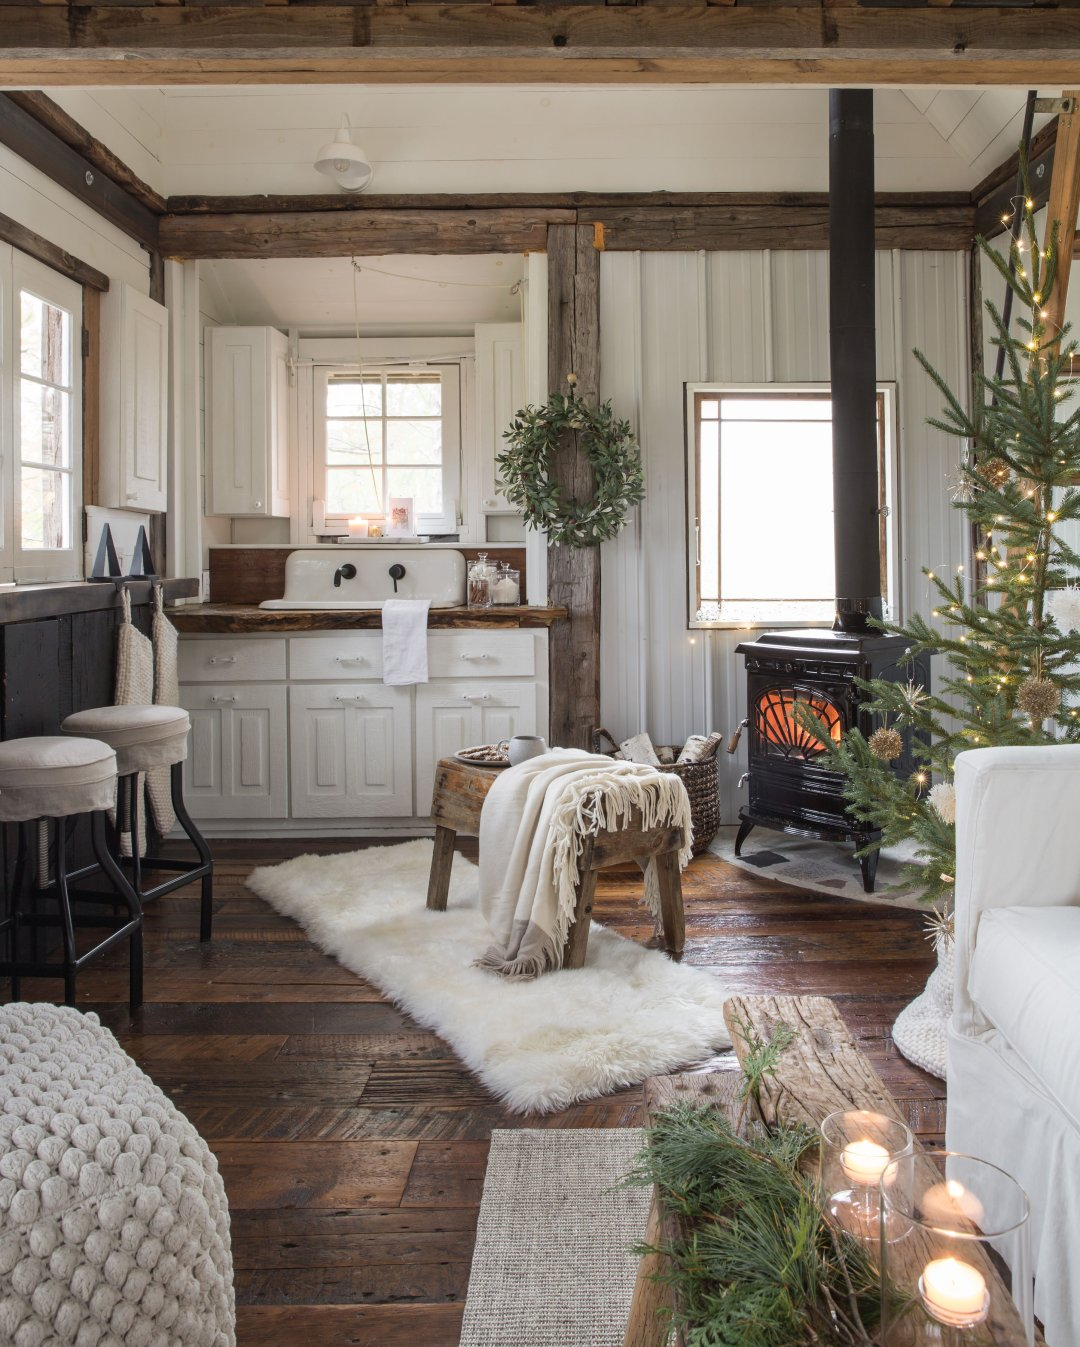 Holiday Decor Ideas Christmas: 10 Cozy Holiday Decorating Ideas For Small Spaces